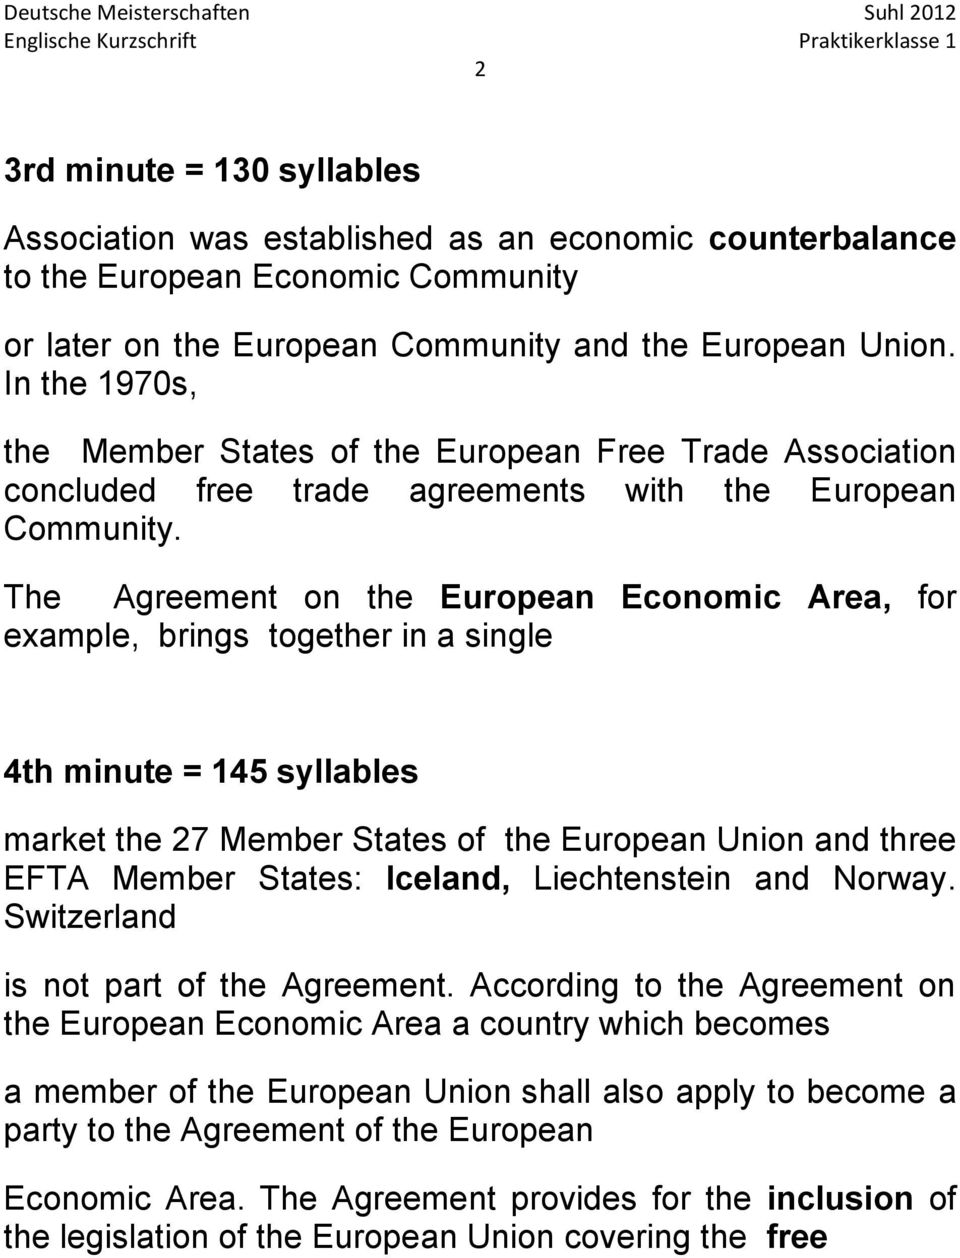 The Agreement on the European Economic Area, for example, brings together in a single 4th minute = 145 syllables market the 27 Member States of the European Union and three EFTA Member States: